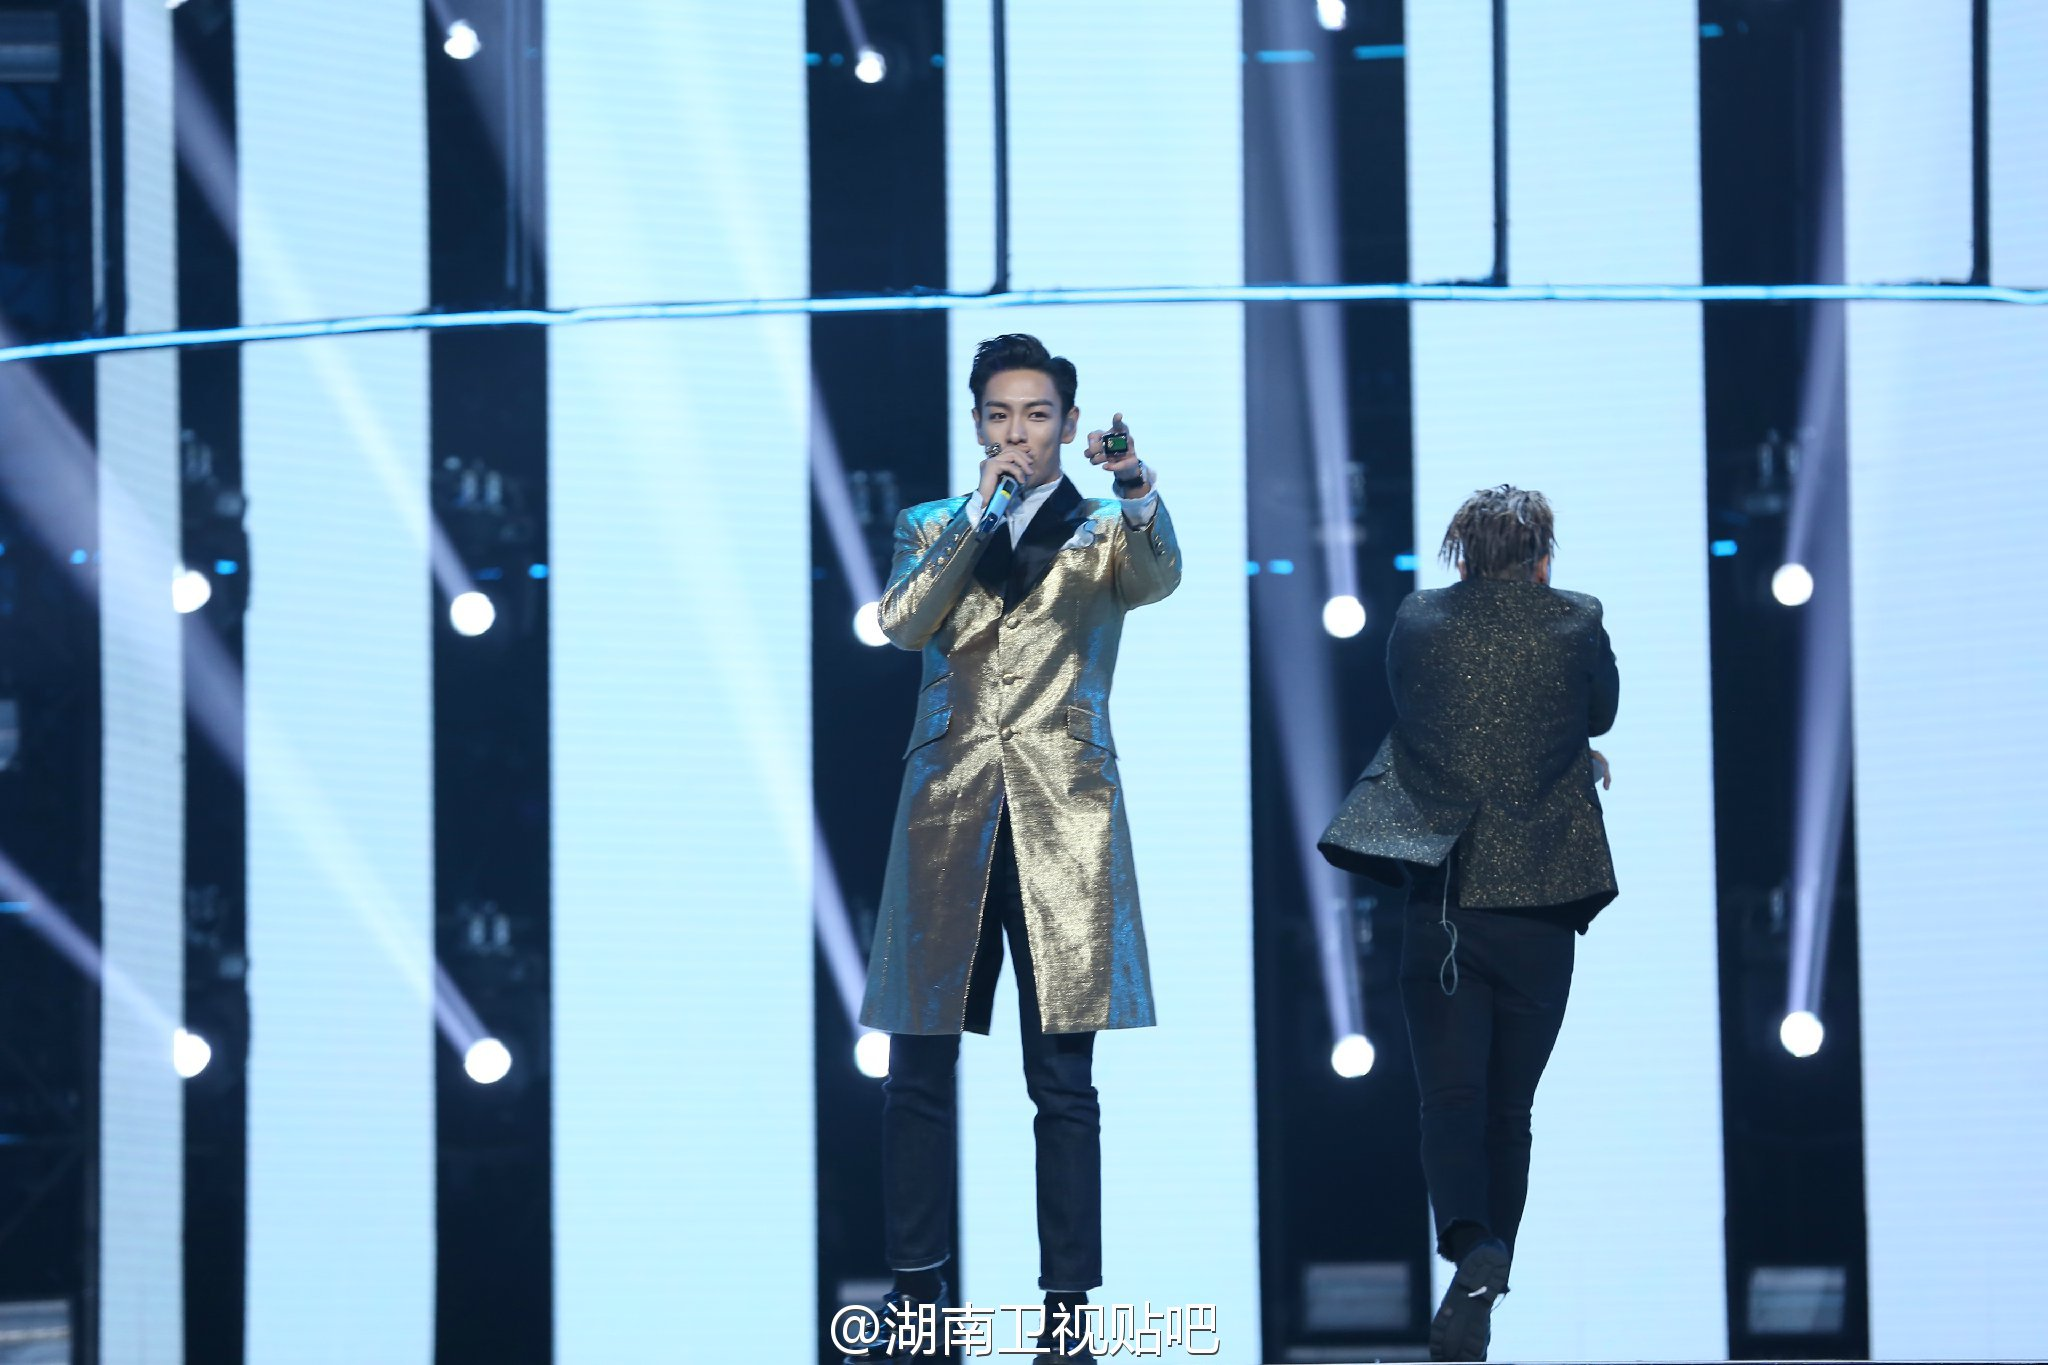 BIGBANG_Hunan_TV_2015-12-31_by_湖南卫视贴吧__6.jpg